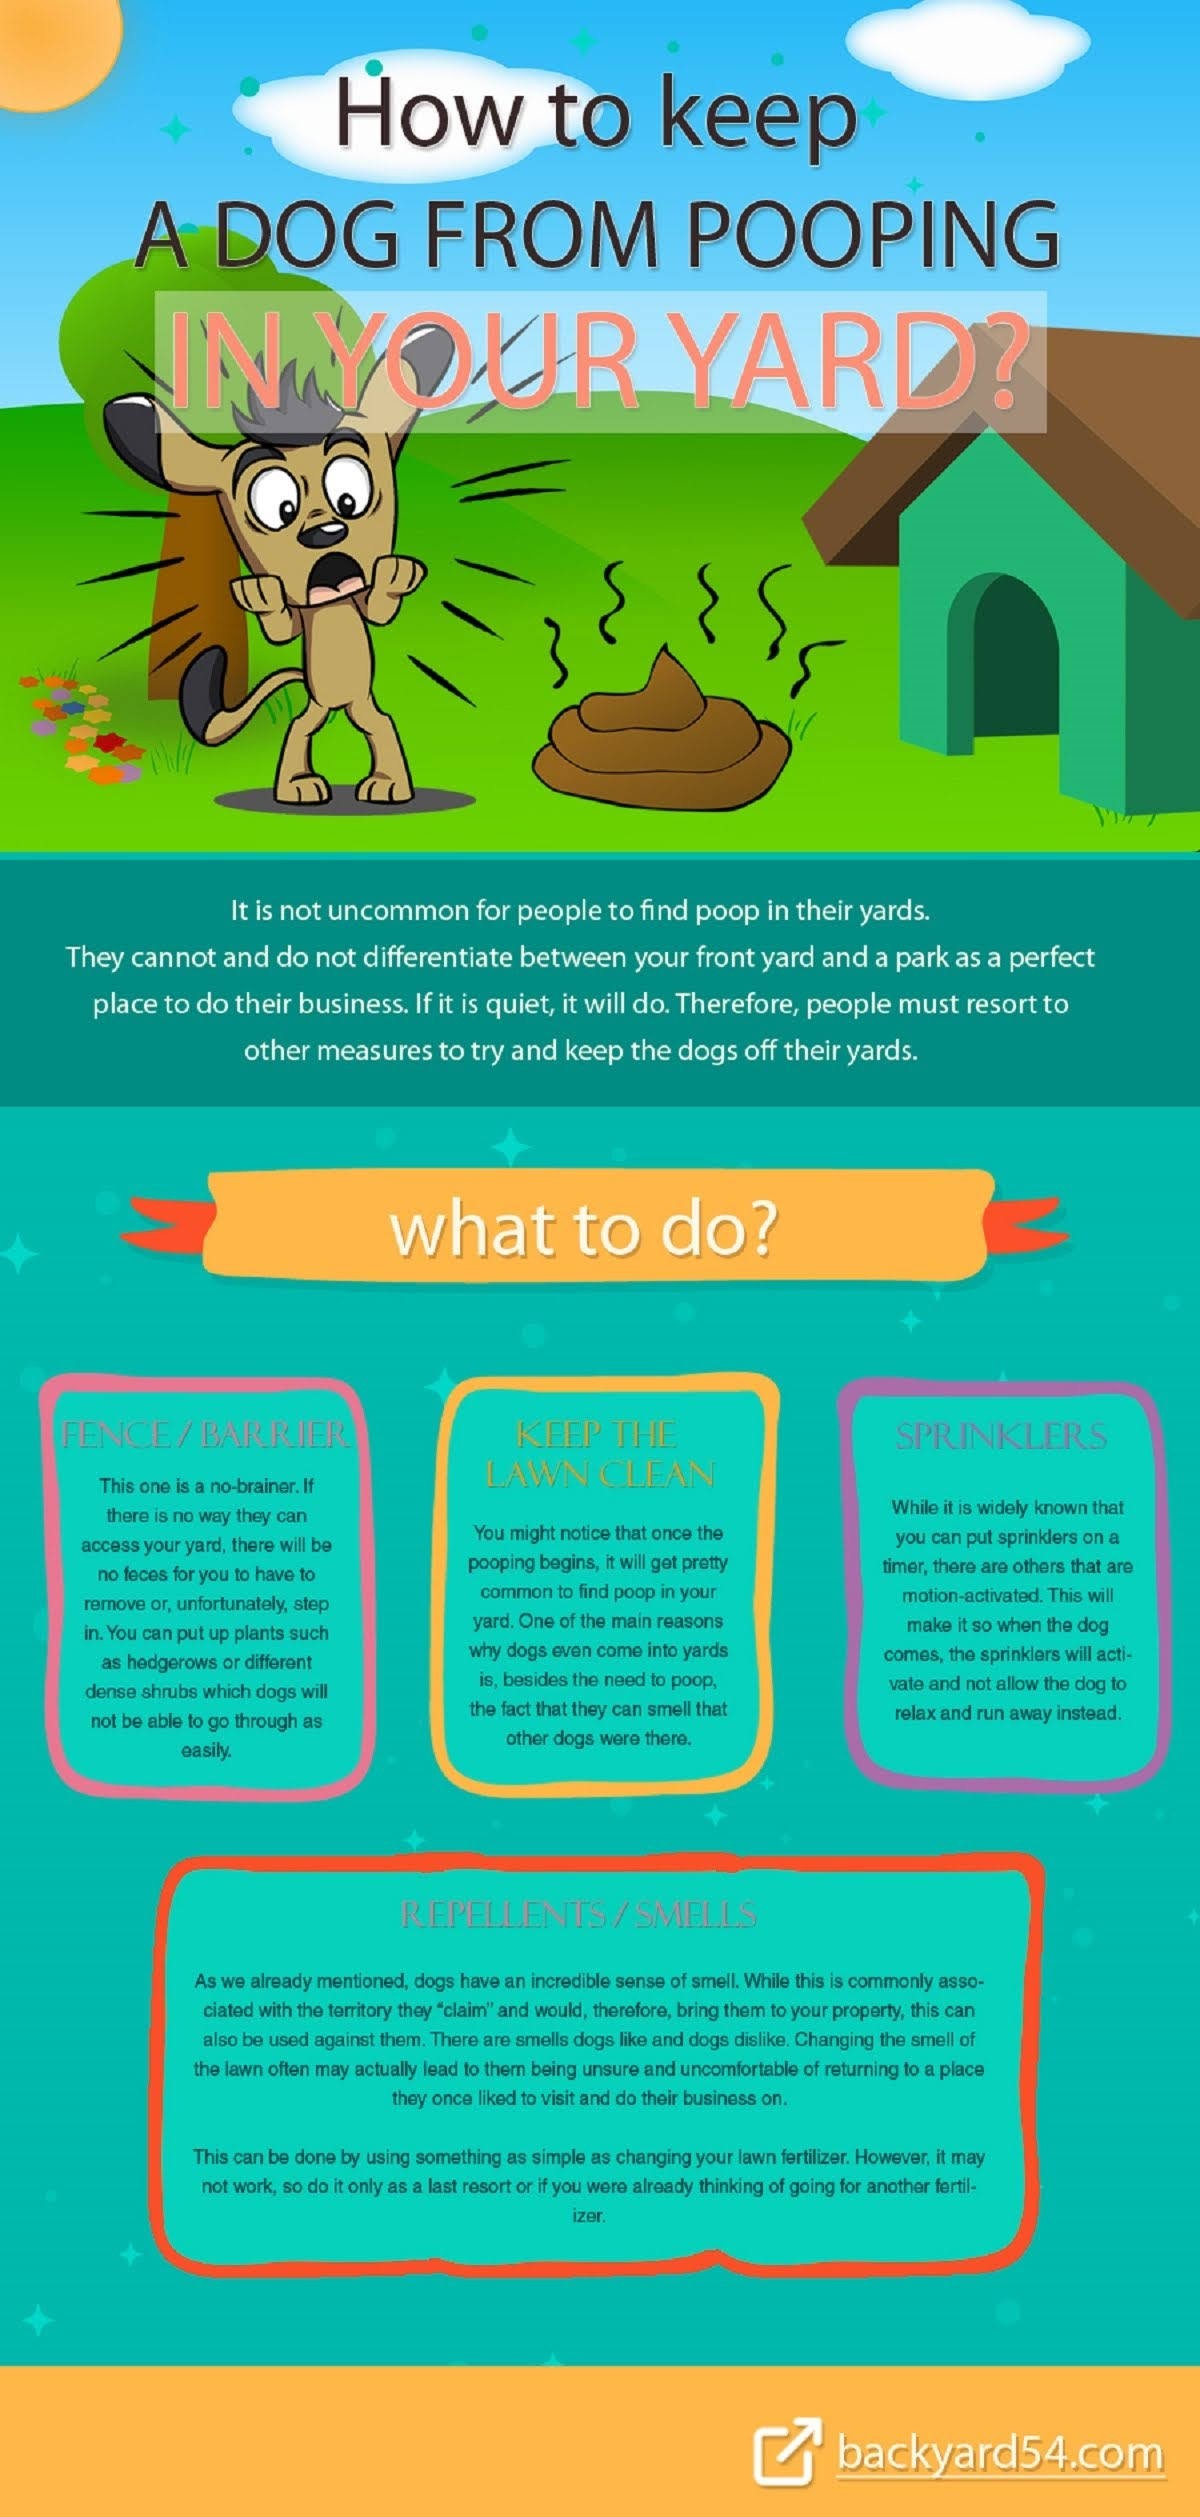 how-to-keep-a-dog-from-pooping-in-your-yard-infographic